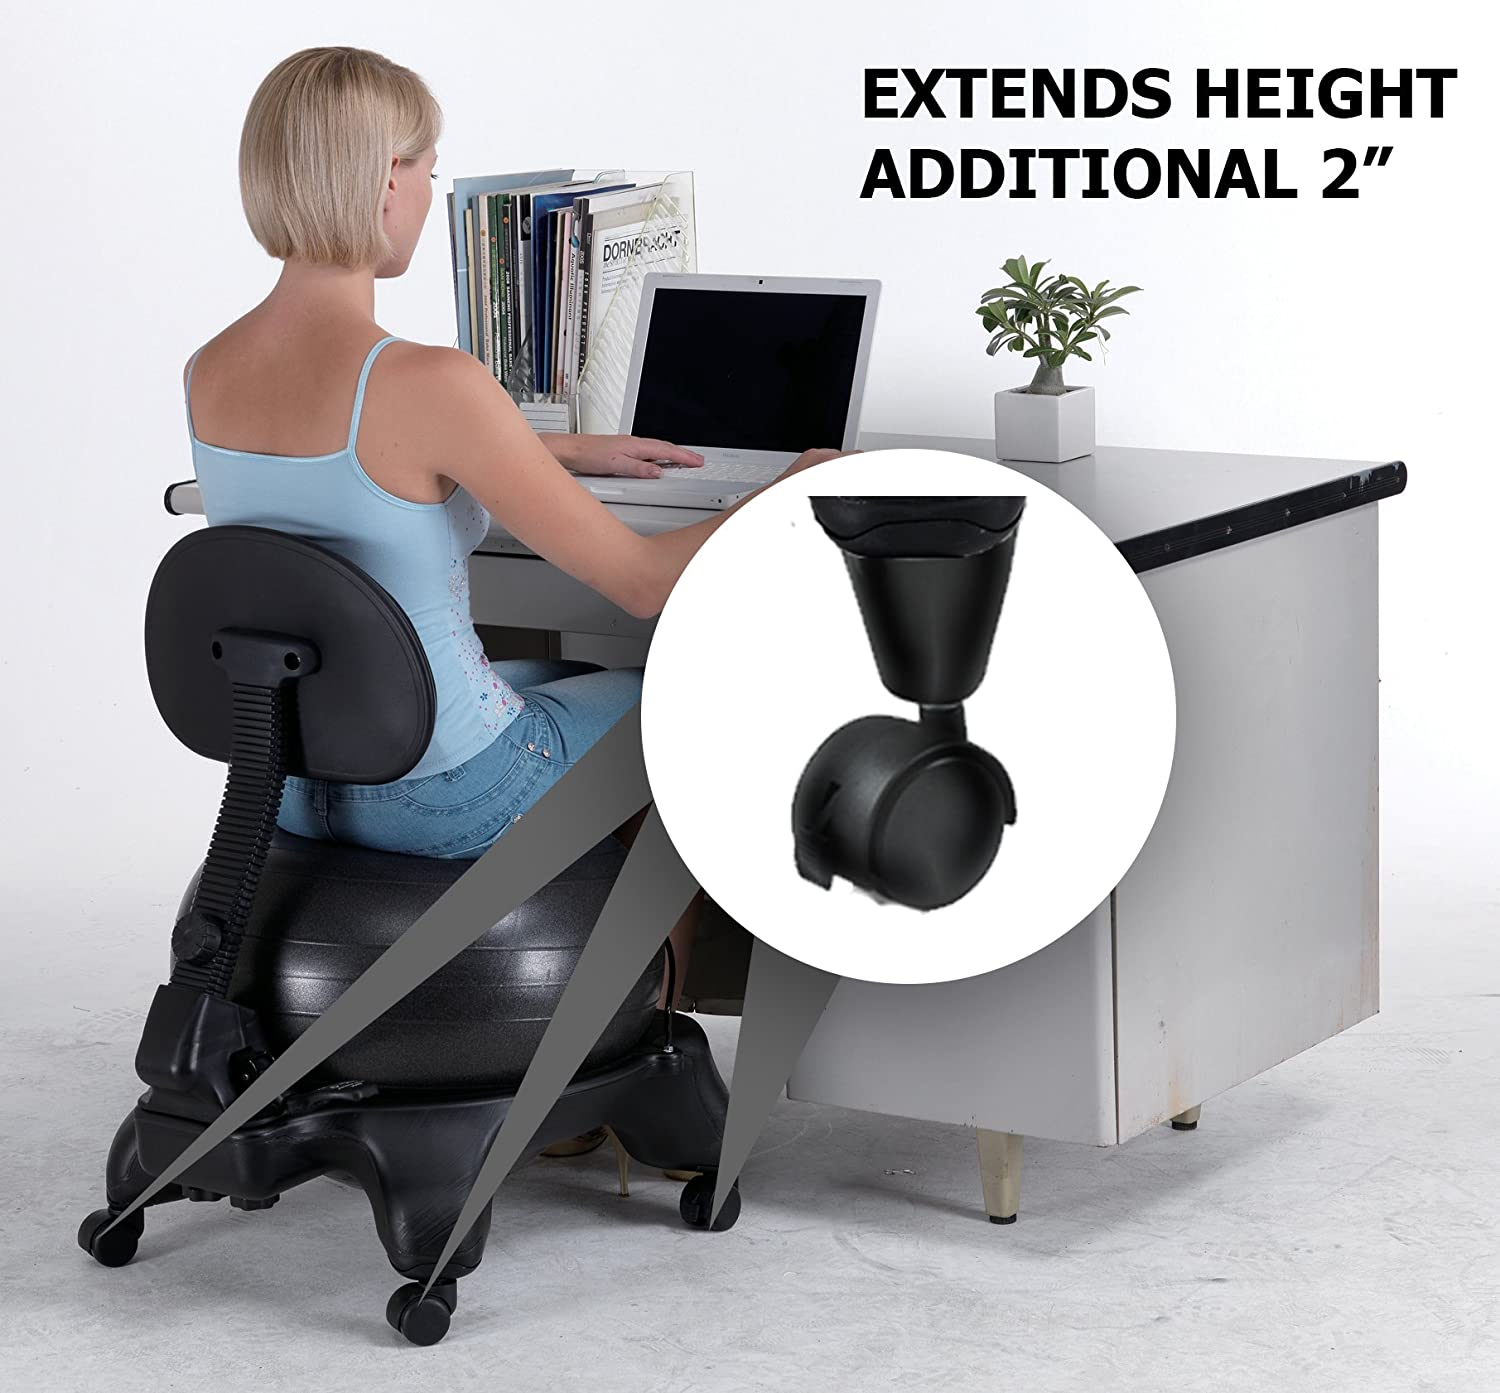 "Amazon Sivan Height Extenders 2"" for Balance Ball Chairs"